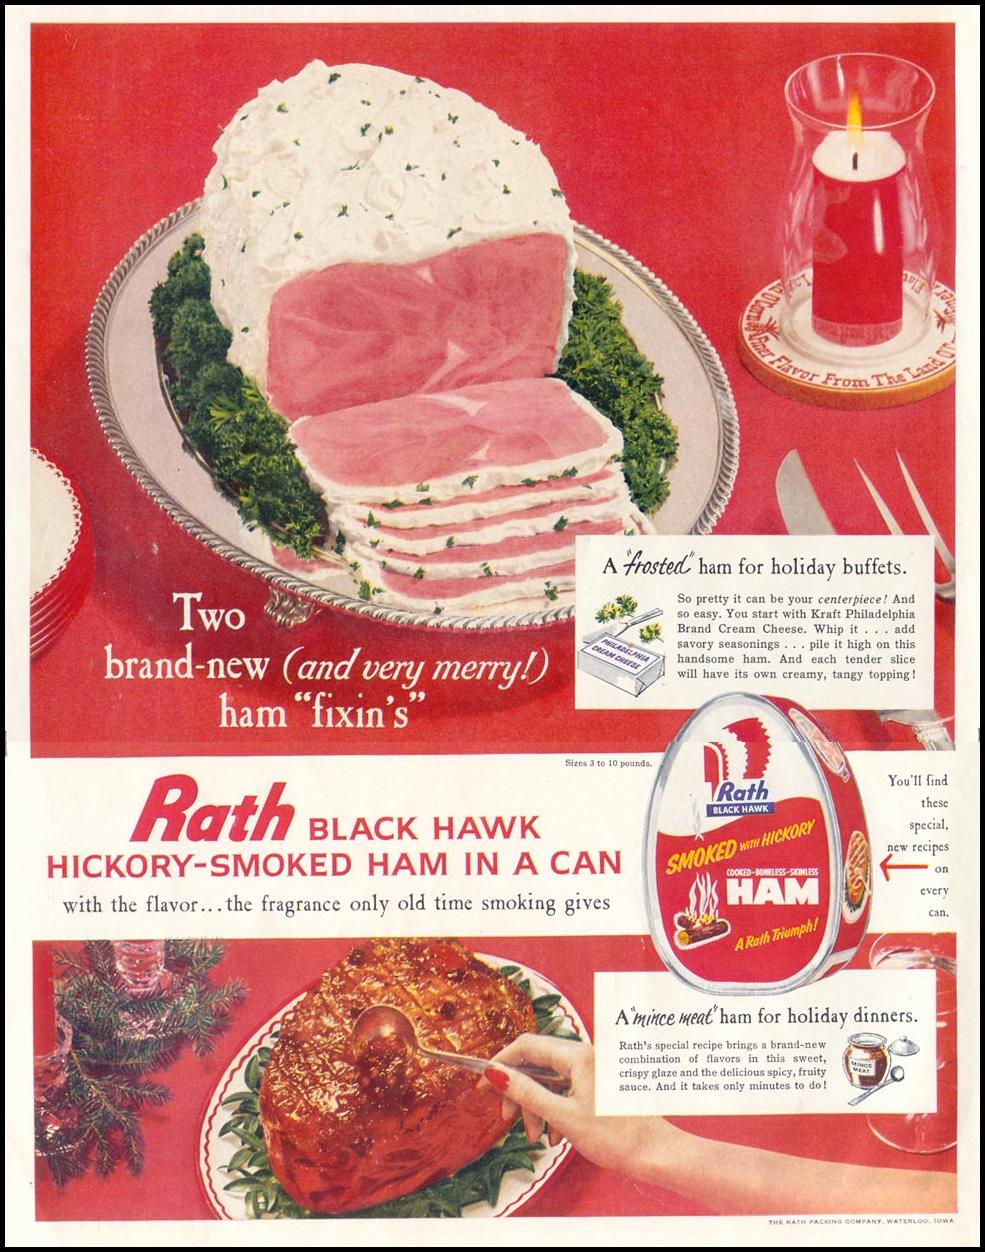 RATH BLACK HAWK HICKORY SMOKED HAM IN A CAN LIFE 12/14/1959 INSIDE FRONT